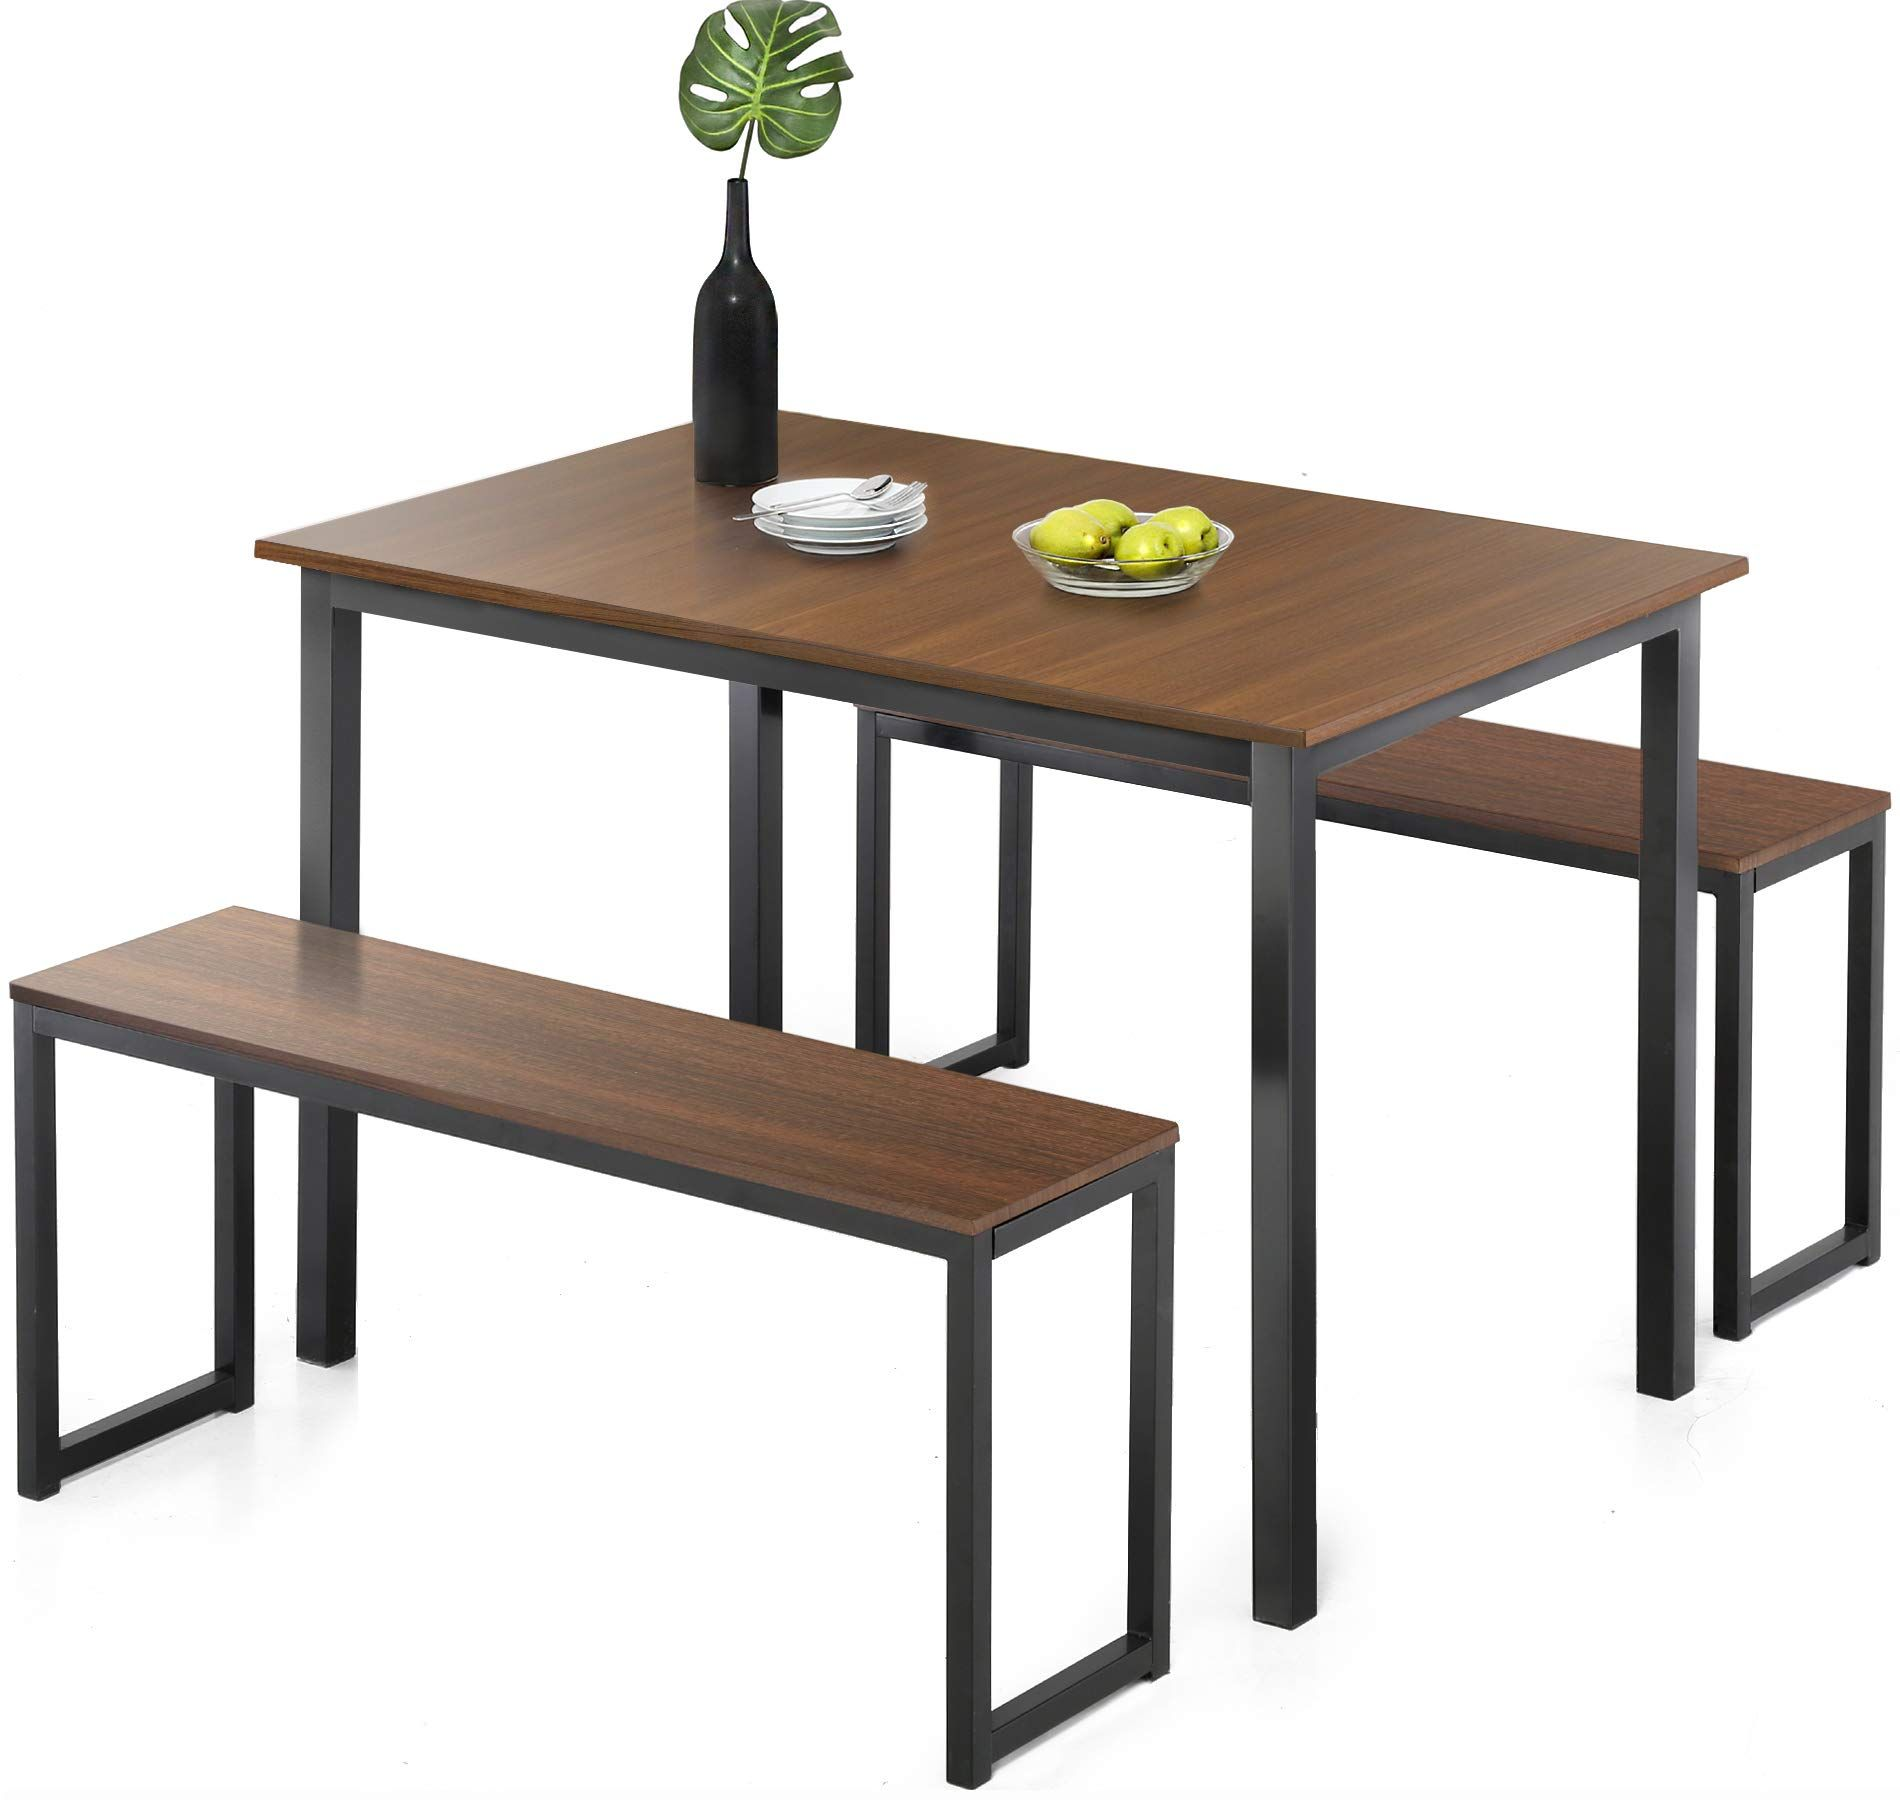 Homury modern studio soho dining table with two benches 3